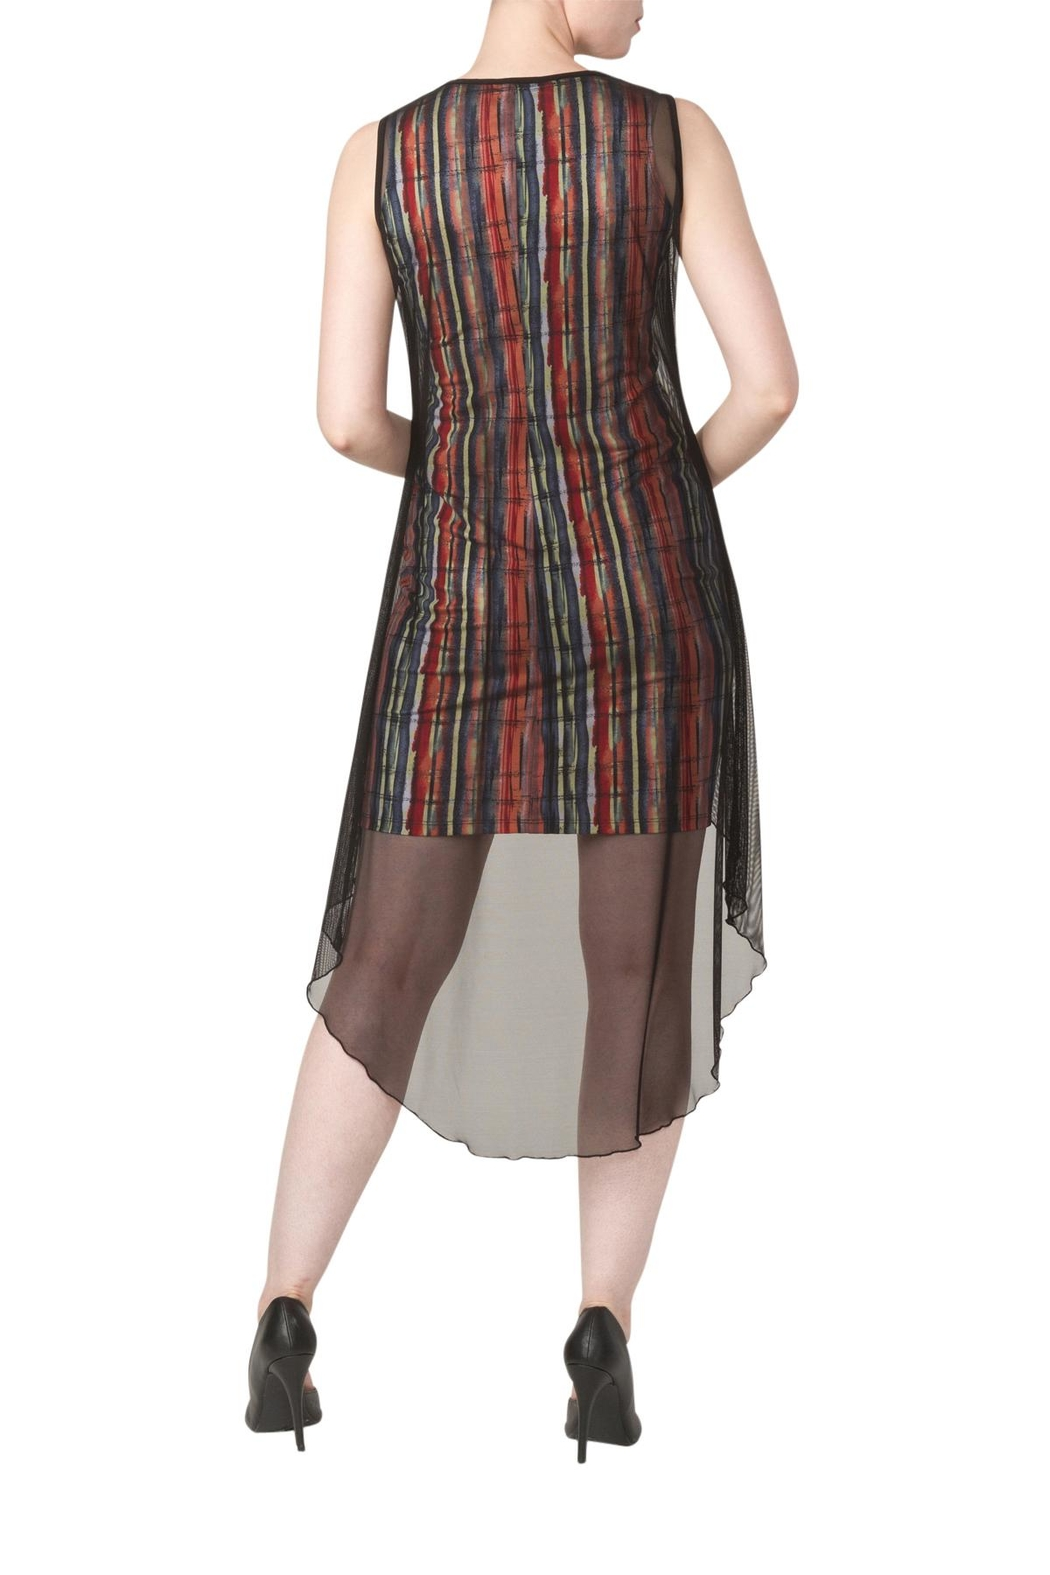 Yvonne Marie Lola Multi Color Dress - Front Full Image